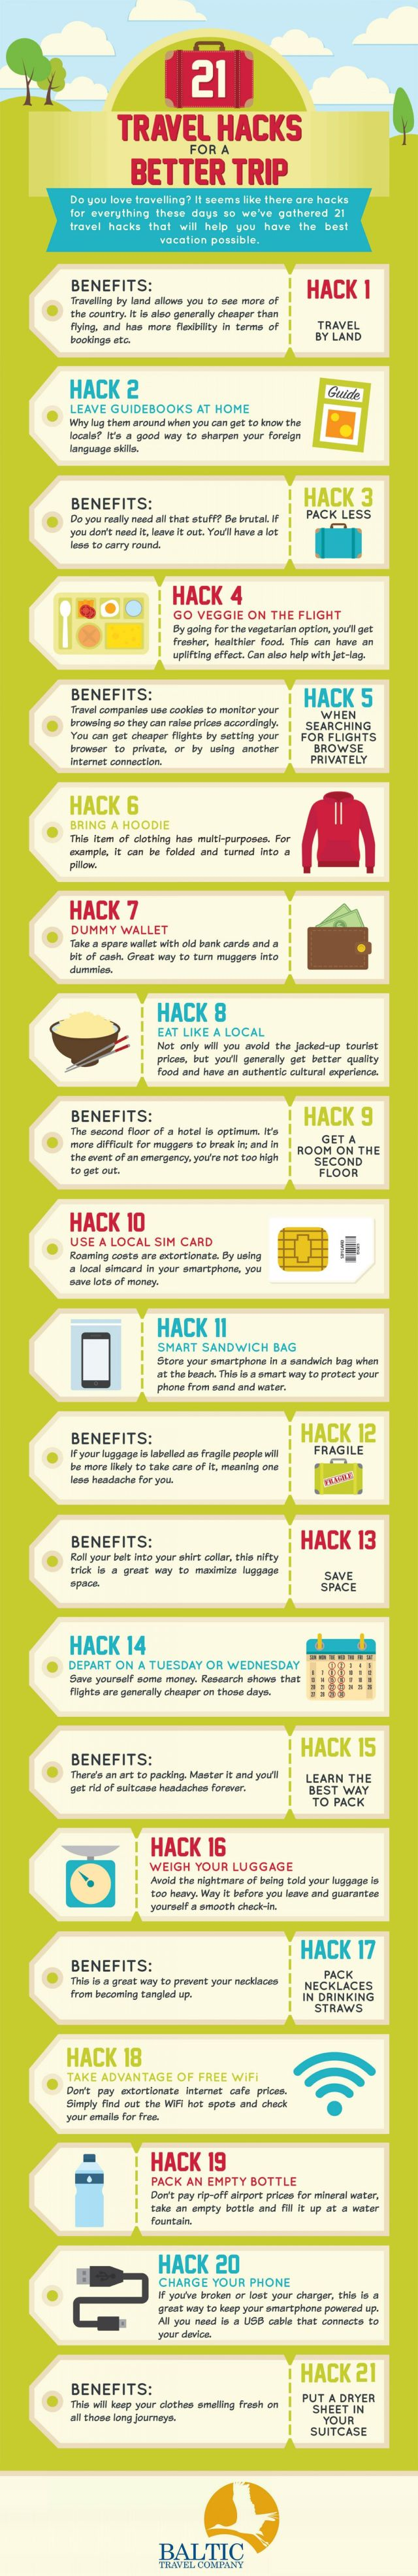 21 Travel Hacks for a Better Trip #infographic